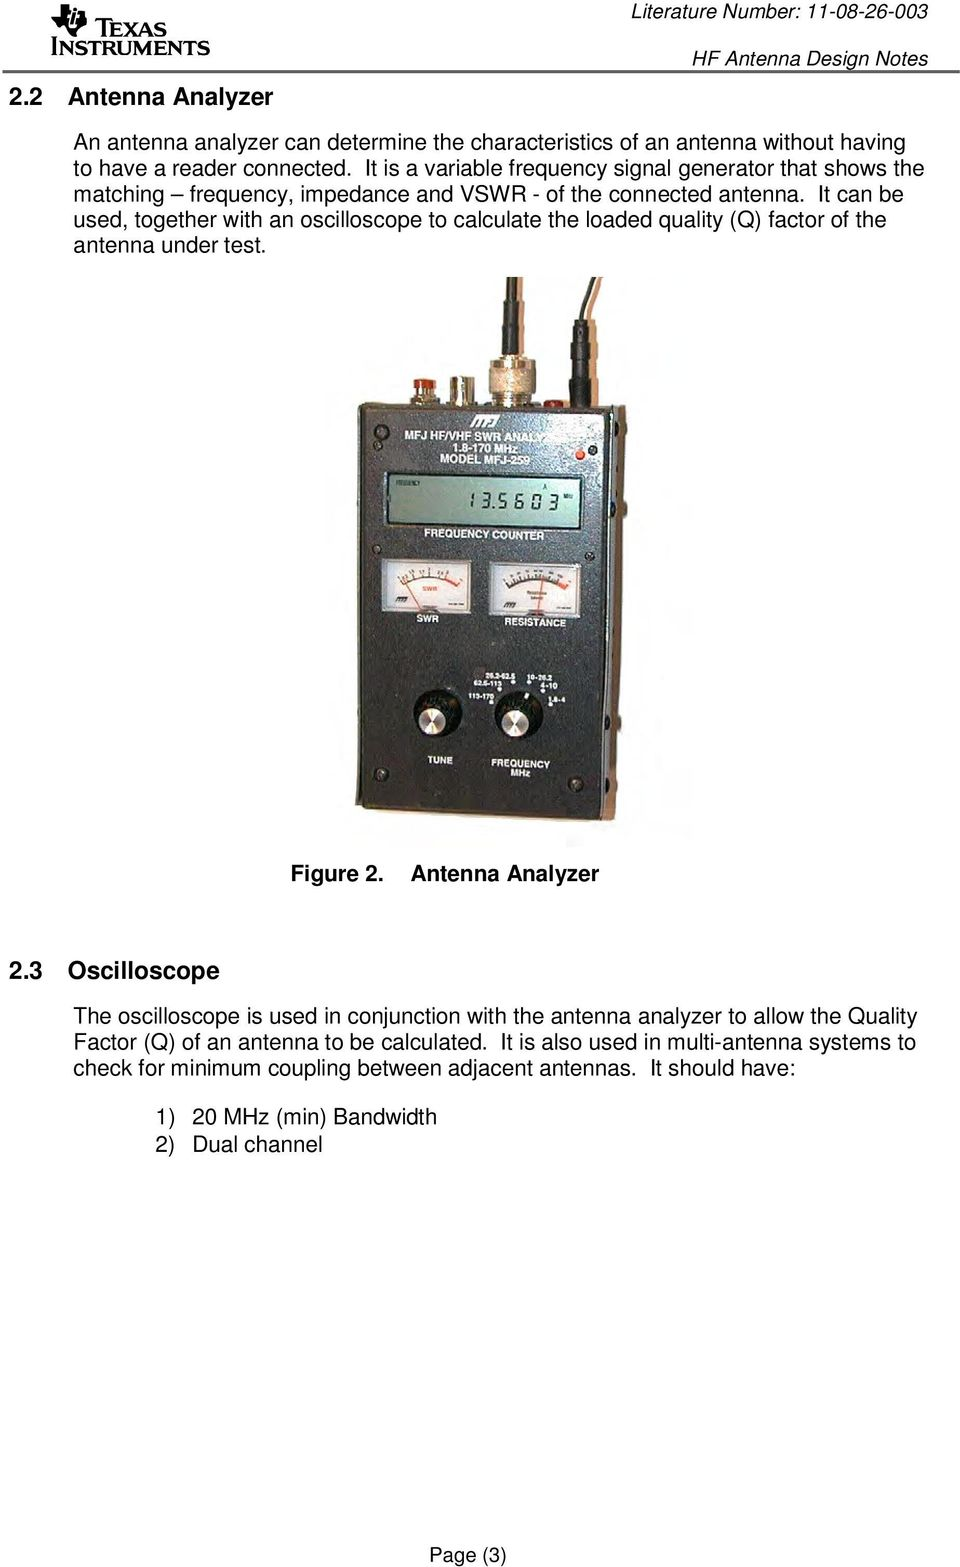 Antenna Analyzer: a review of models, specifications, instructions. Device for tuning antennas